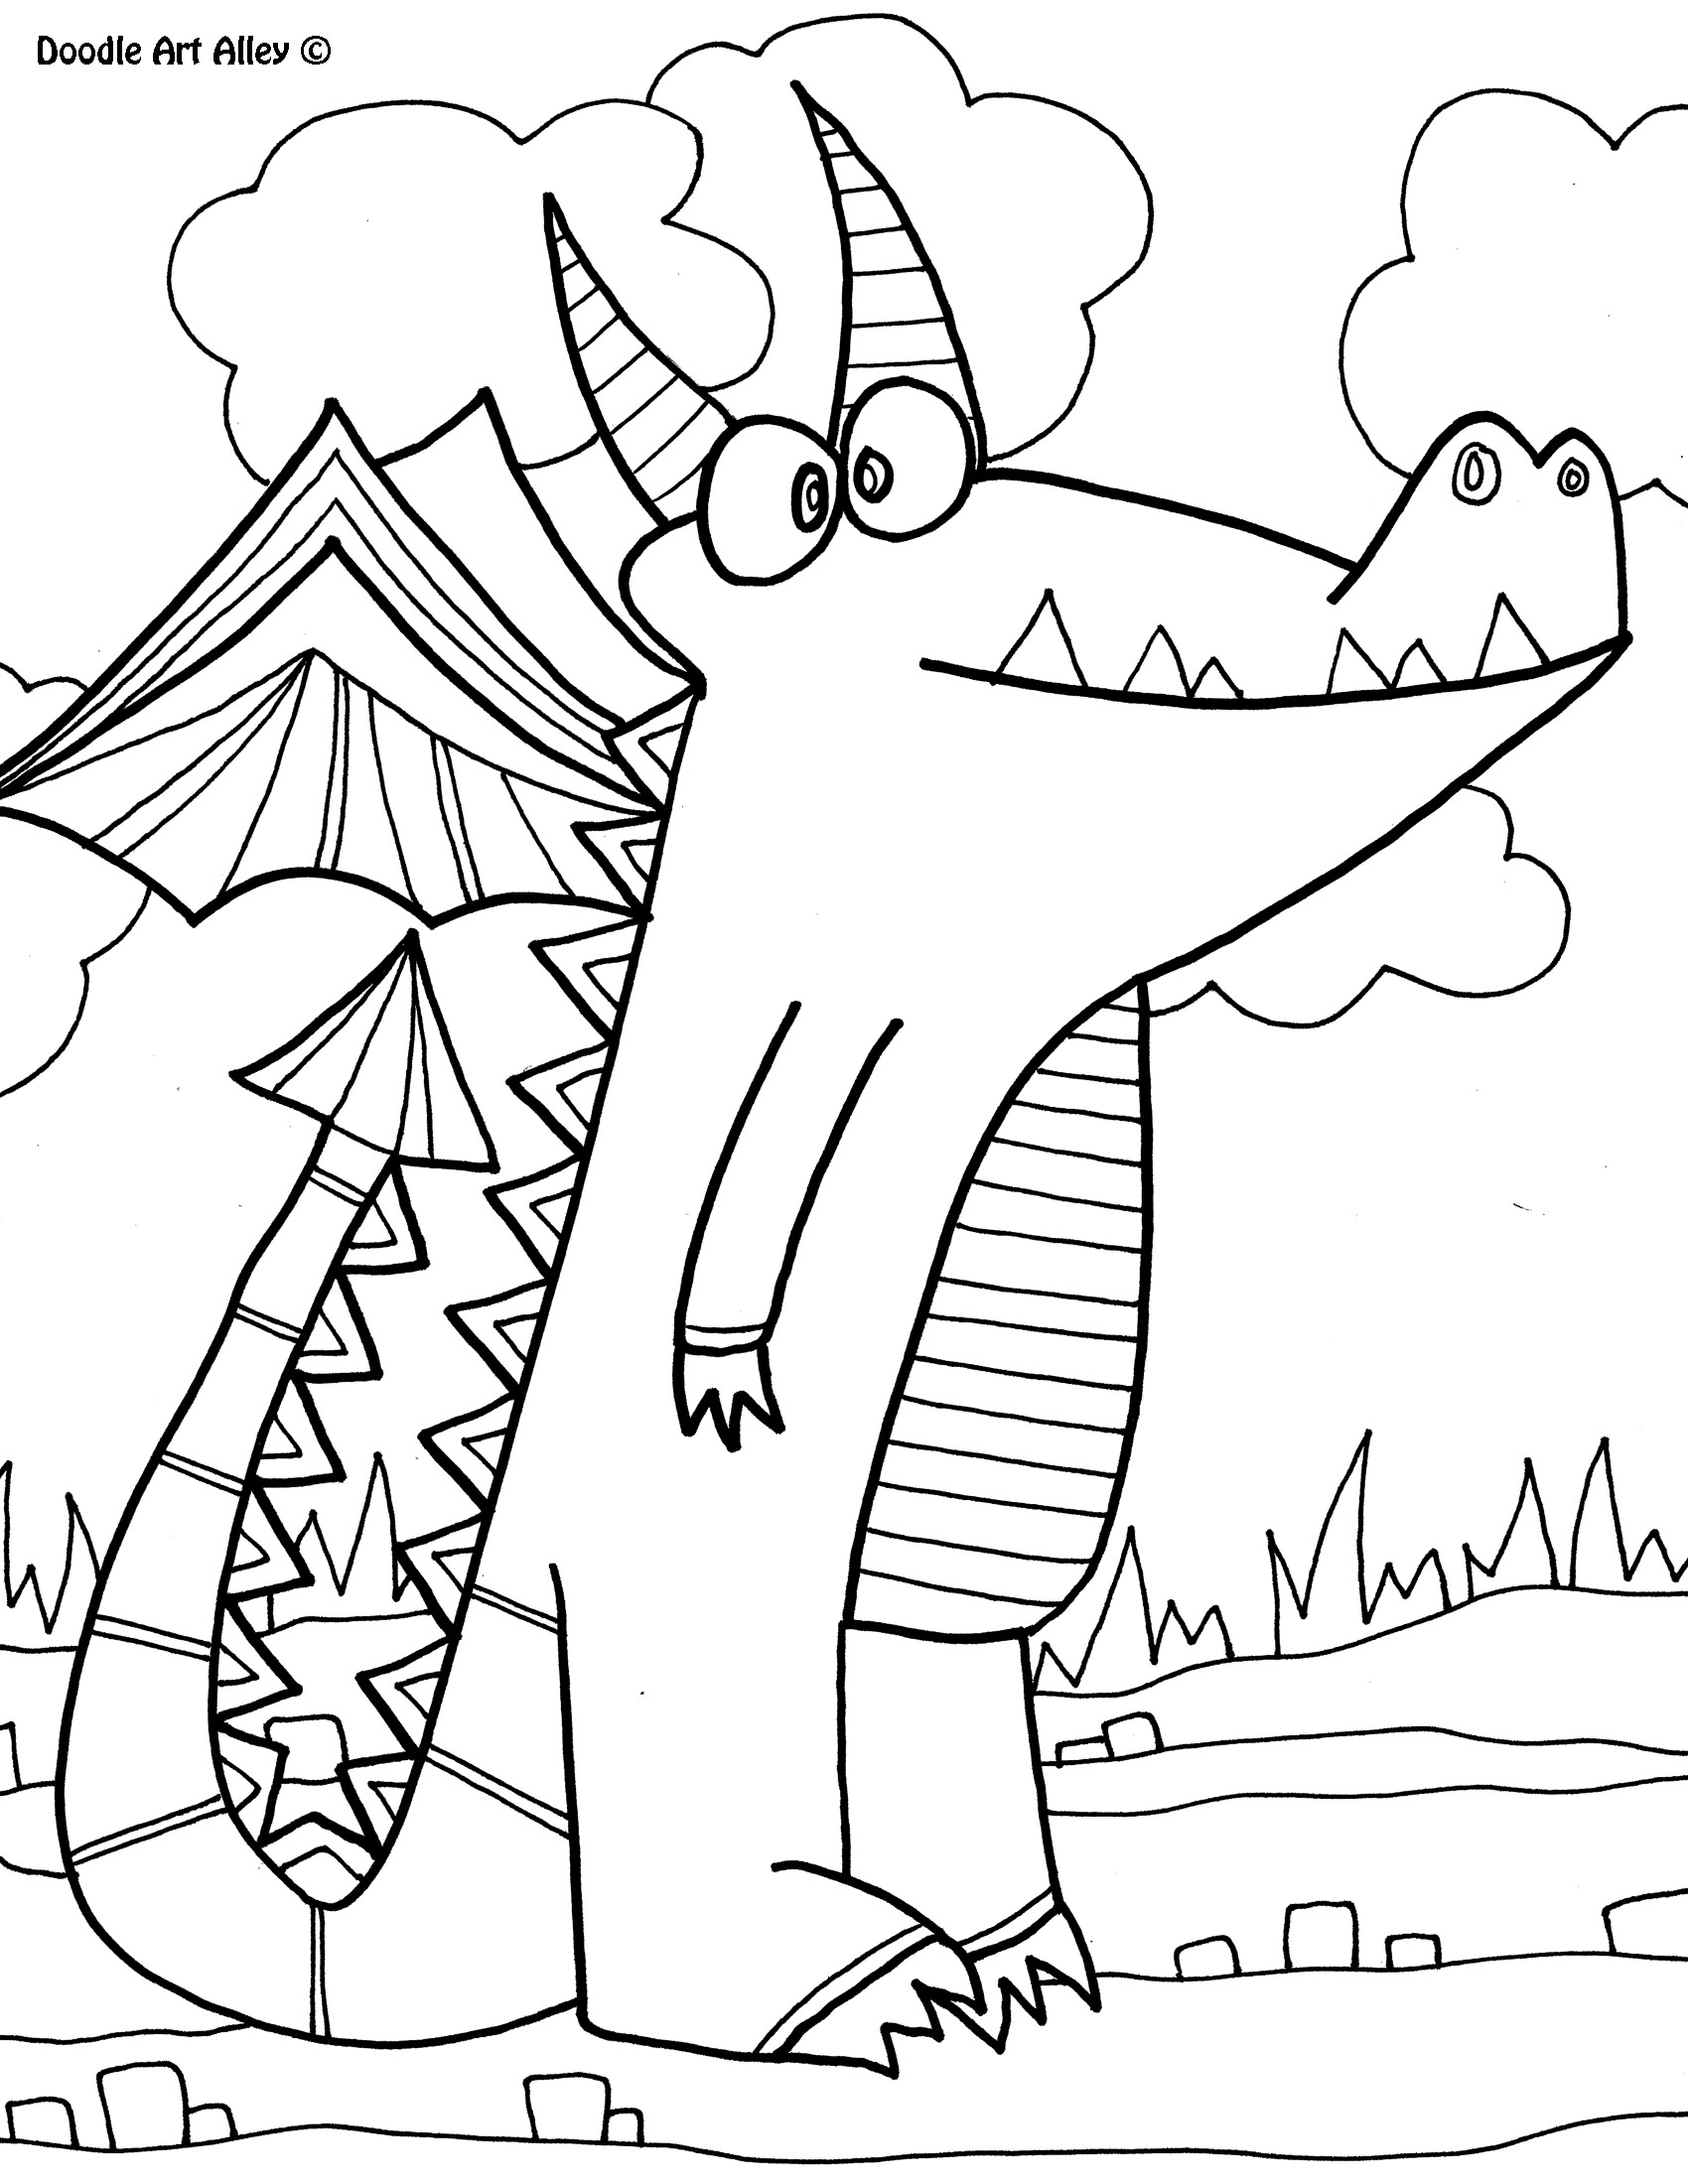 dragon coloring pages doodle art alley